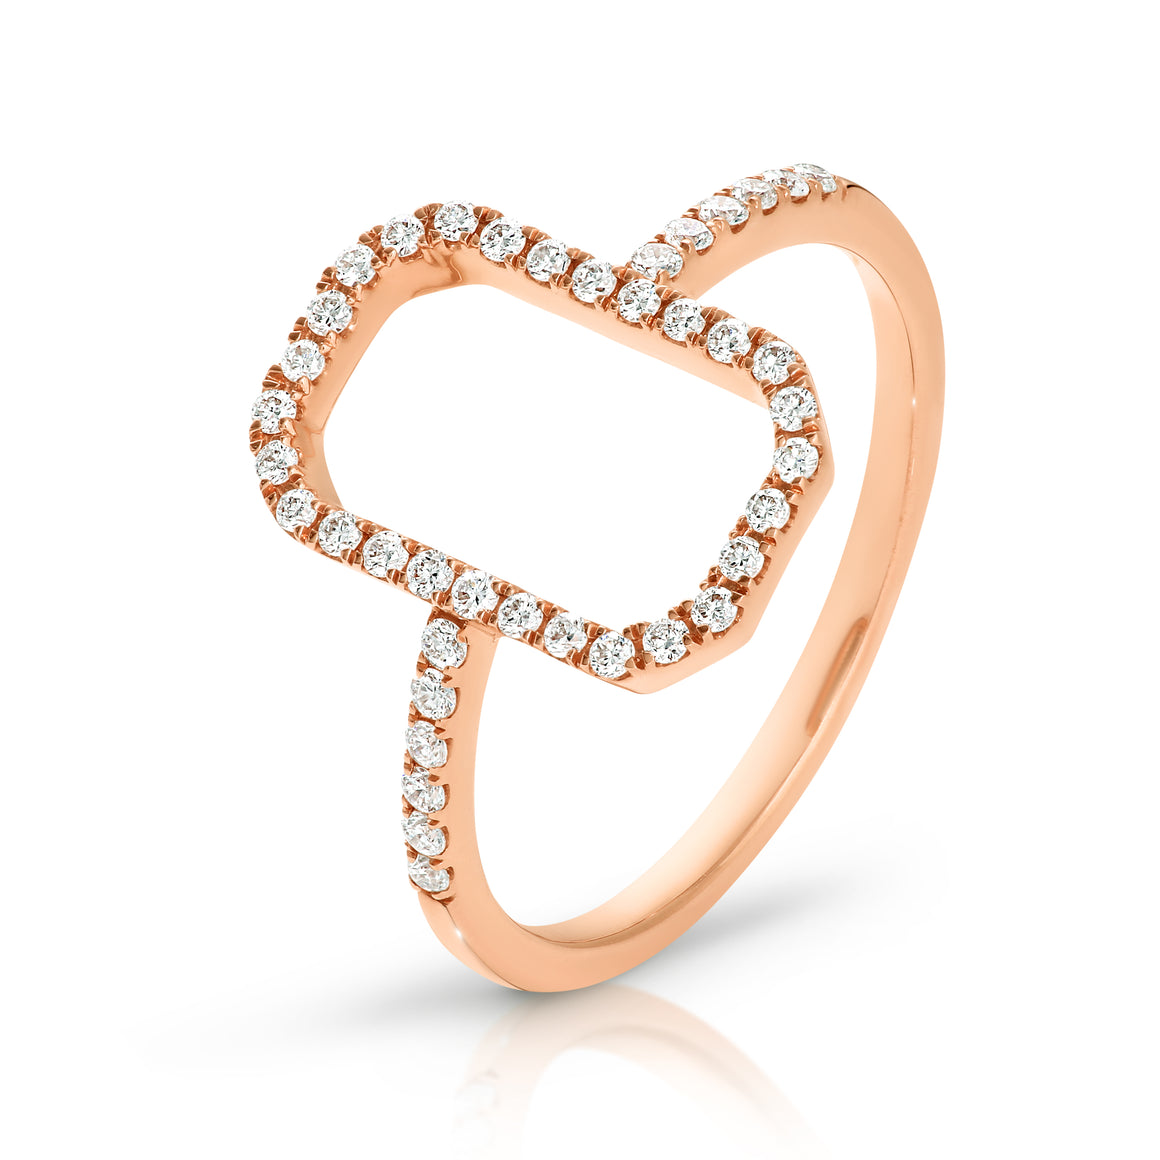 9ct Gold & Diamond 'Cora' Ring - Gemma Stone Jewellery